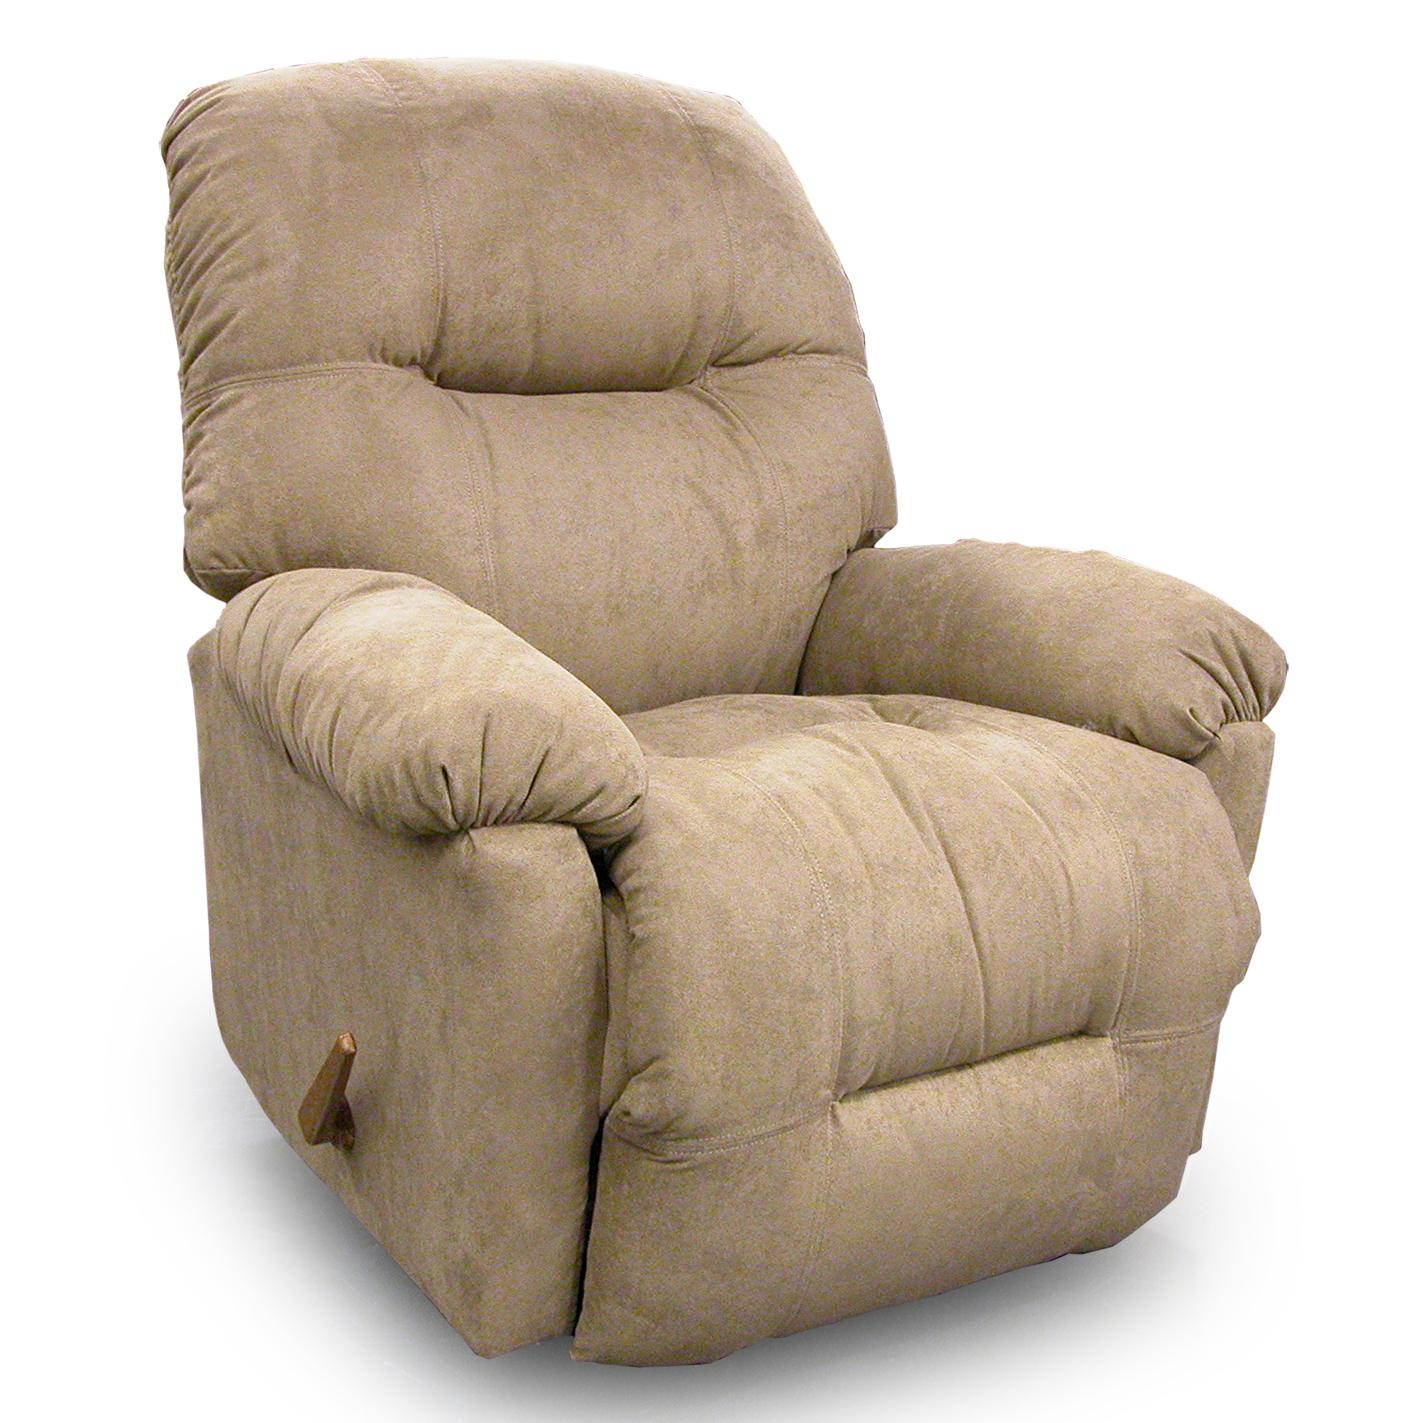 Outstanding Best Home Furnishings Petite Recliners 9Mw17 1 Wynette Pabps2019 Chair Design Images Pabps2019Com